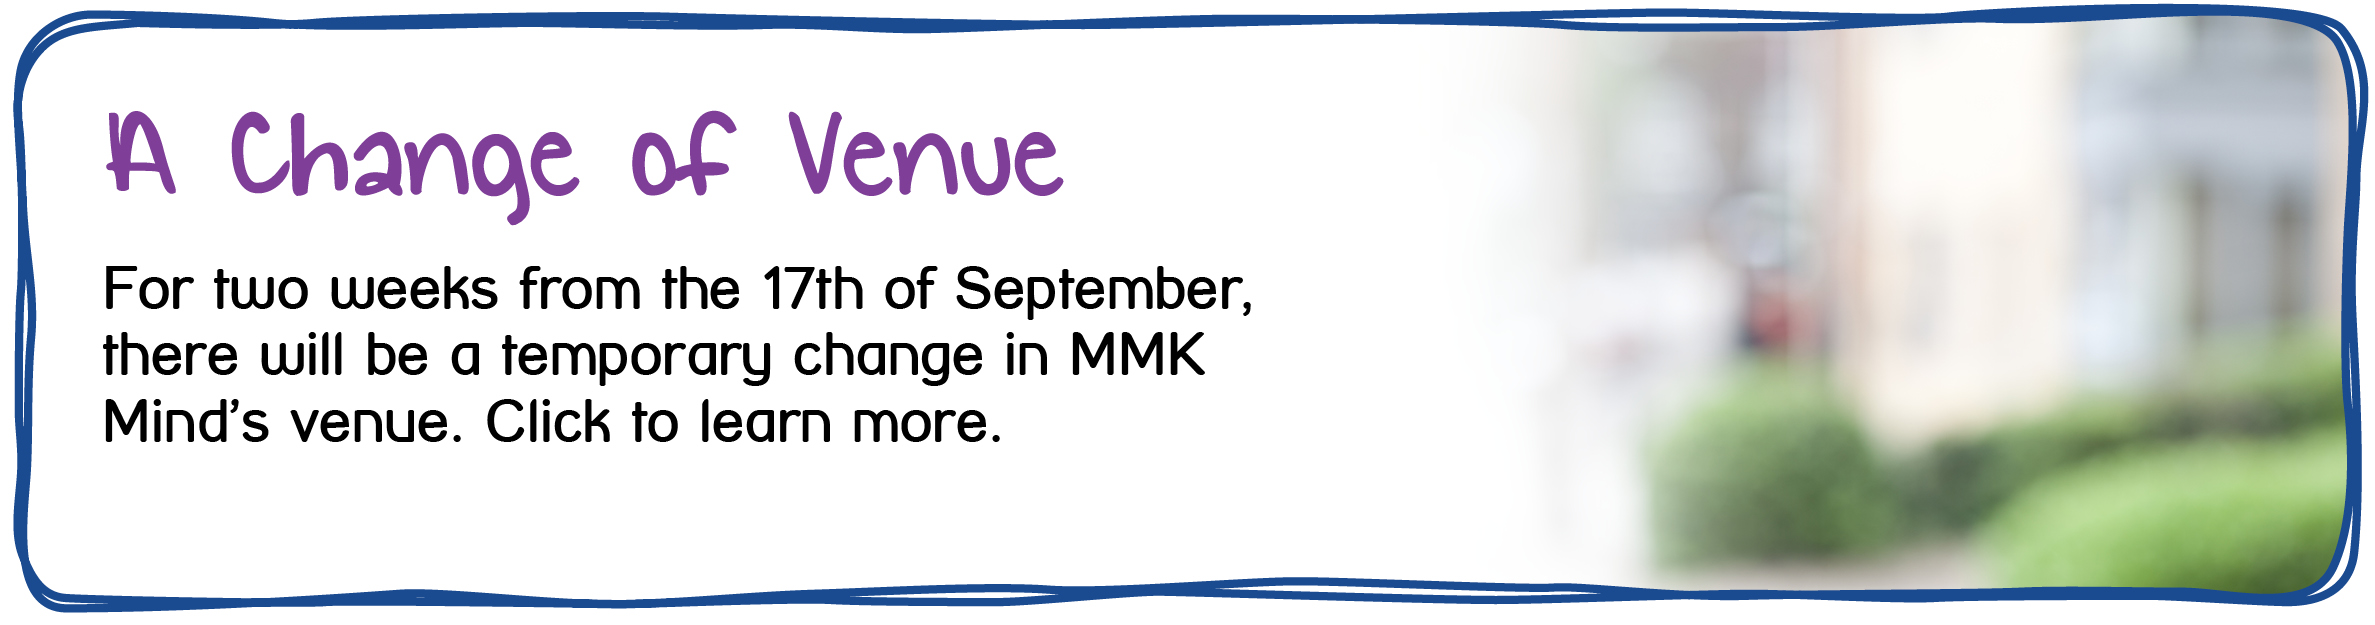 A Change of Venue. For two weeks from the 17th of September, MMK Mind will see a change in venue. Click the link to find out more.